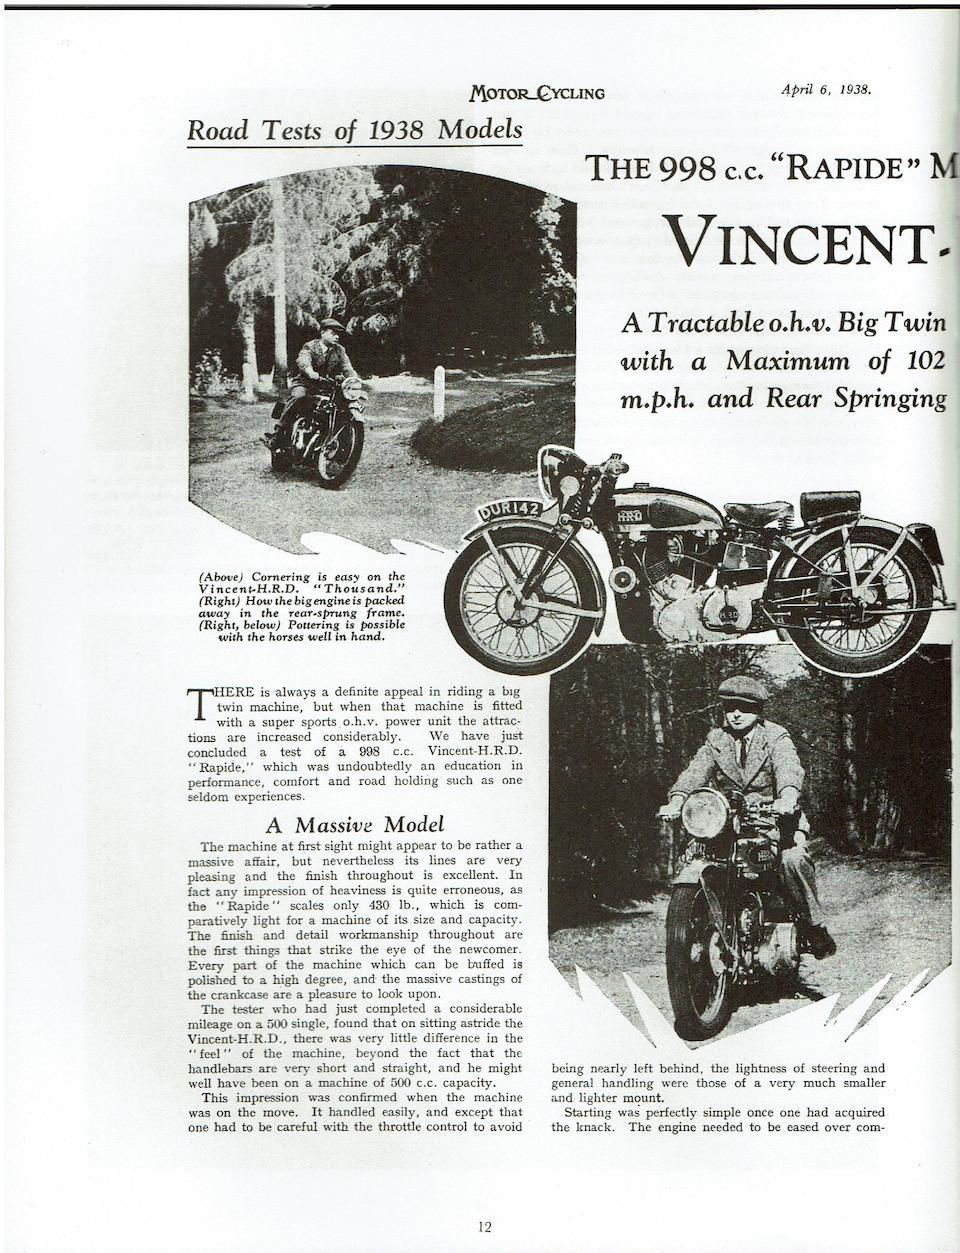 Factory Demonstrator, The 1938 & 1955 'Motor Cycling' Road Tests Machine, 1938 Vincent-HRD 998cc Series-A Rapide  Frame no. DV1504 (see text) Engine no. None visible (see text)